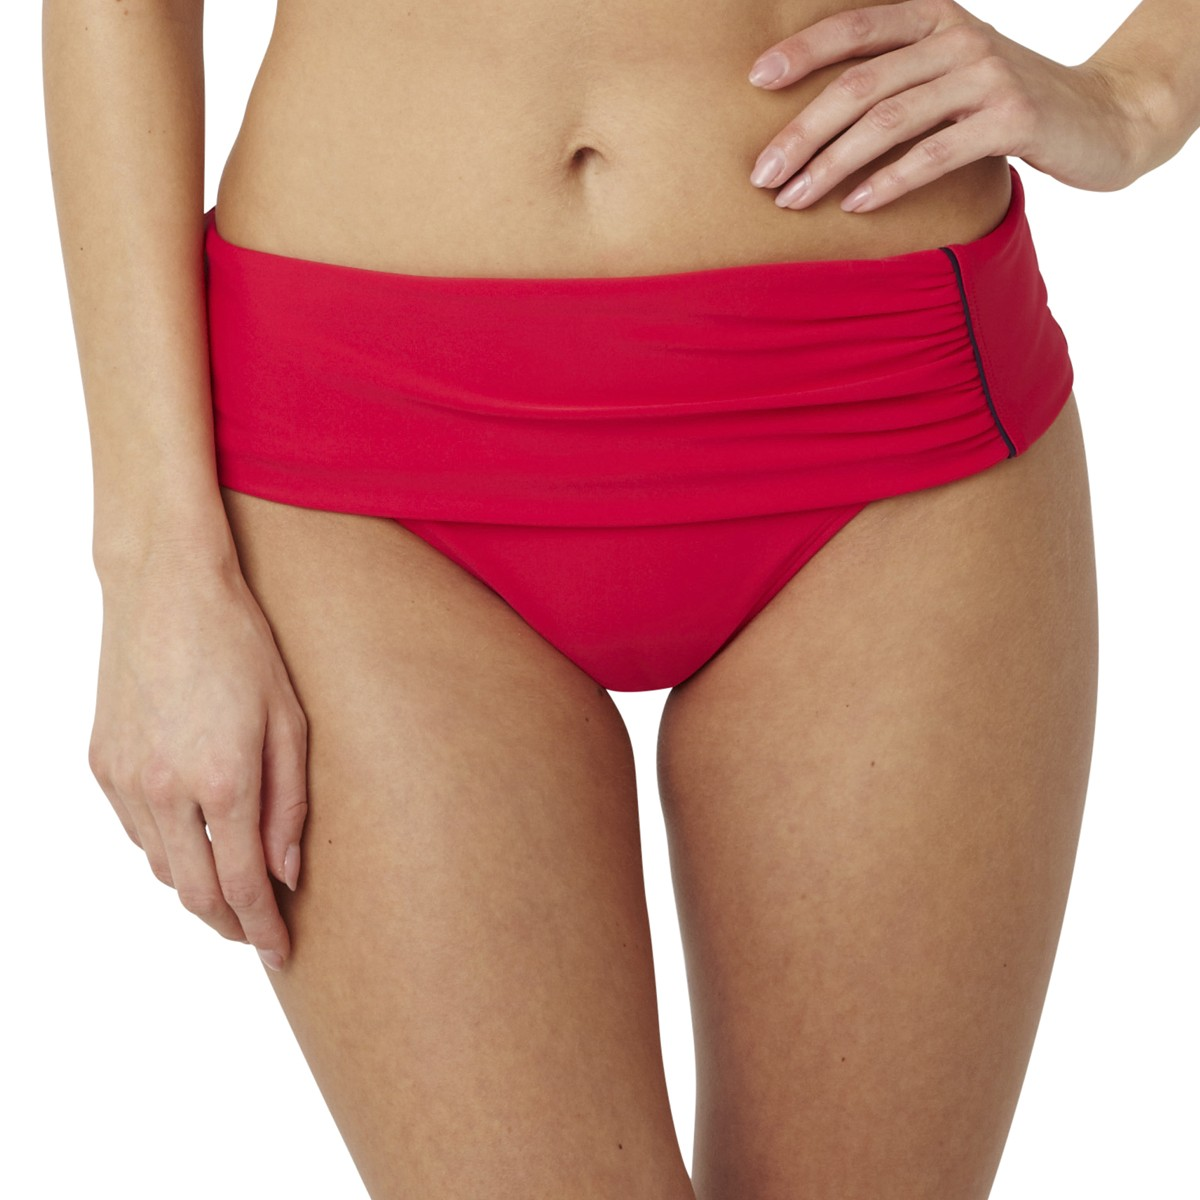 Panache Veronica Folded Bikini Brief - Red